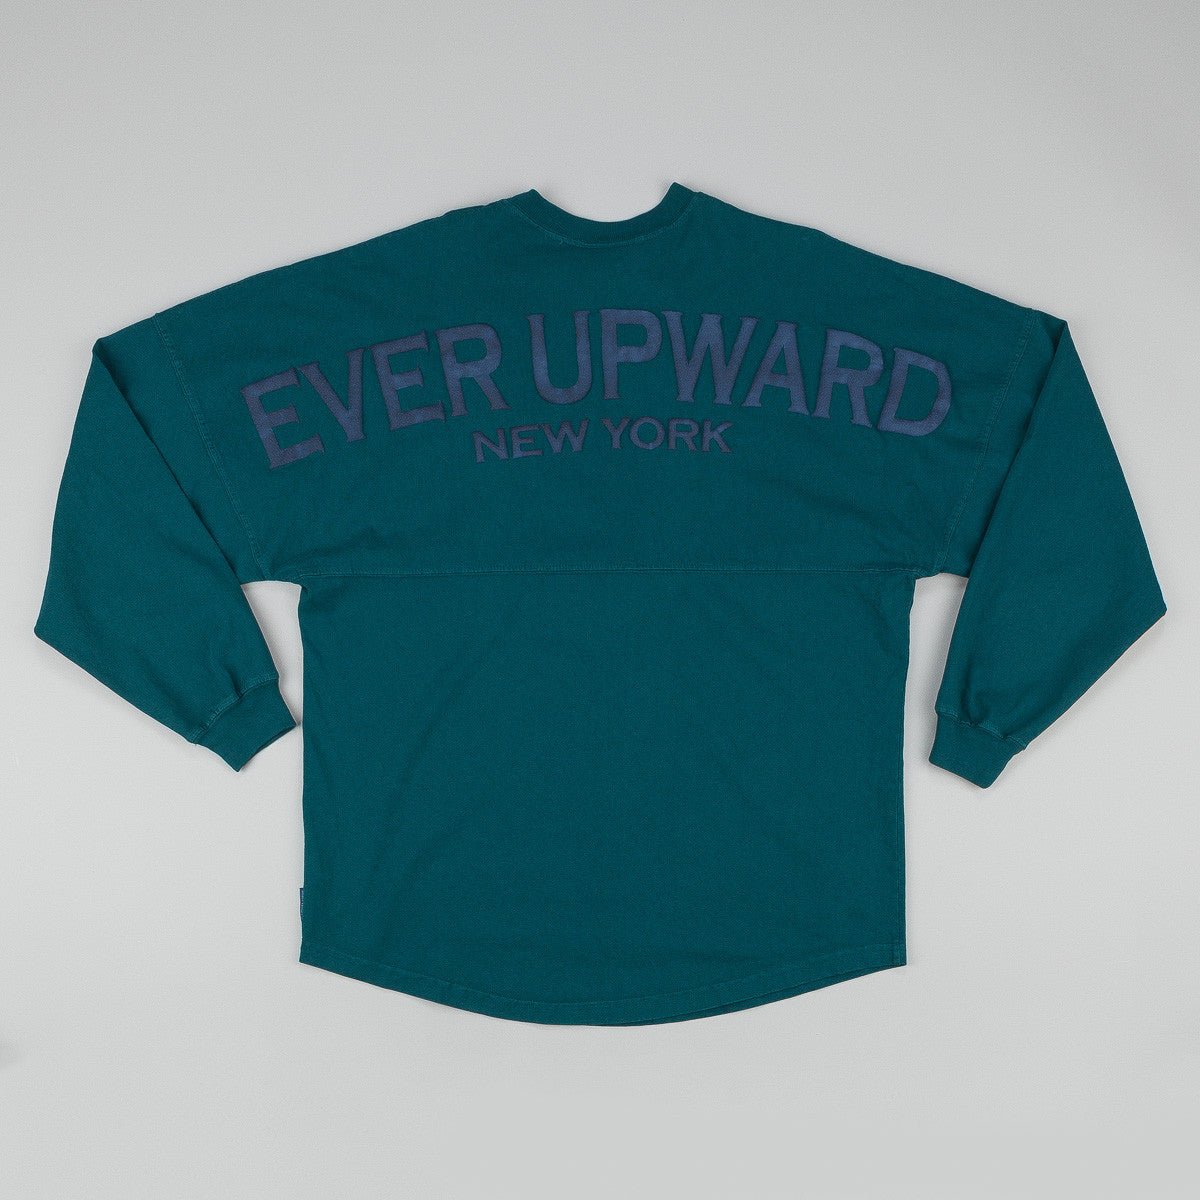 Belief Upward Football Jersey - Dark Teal